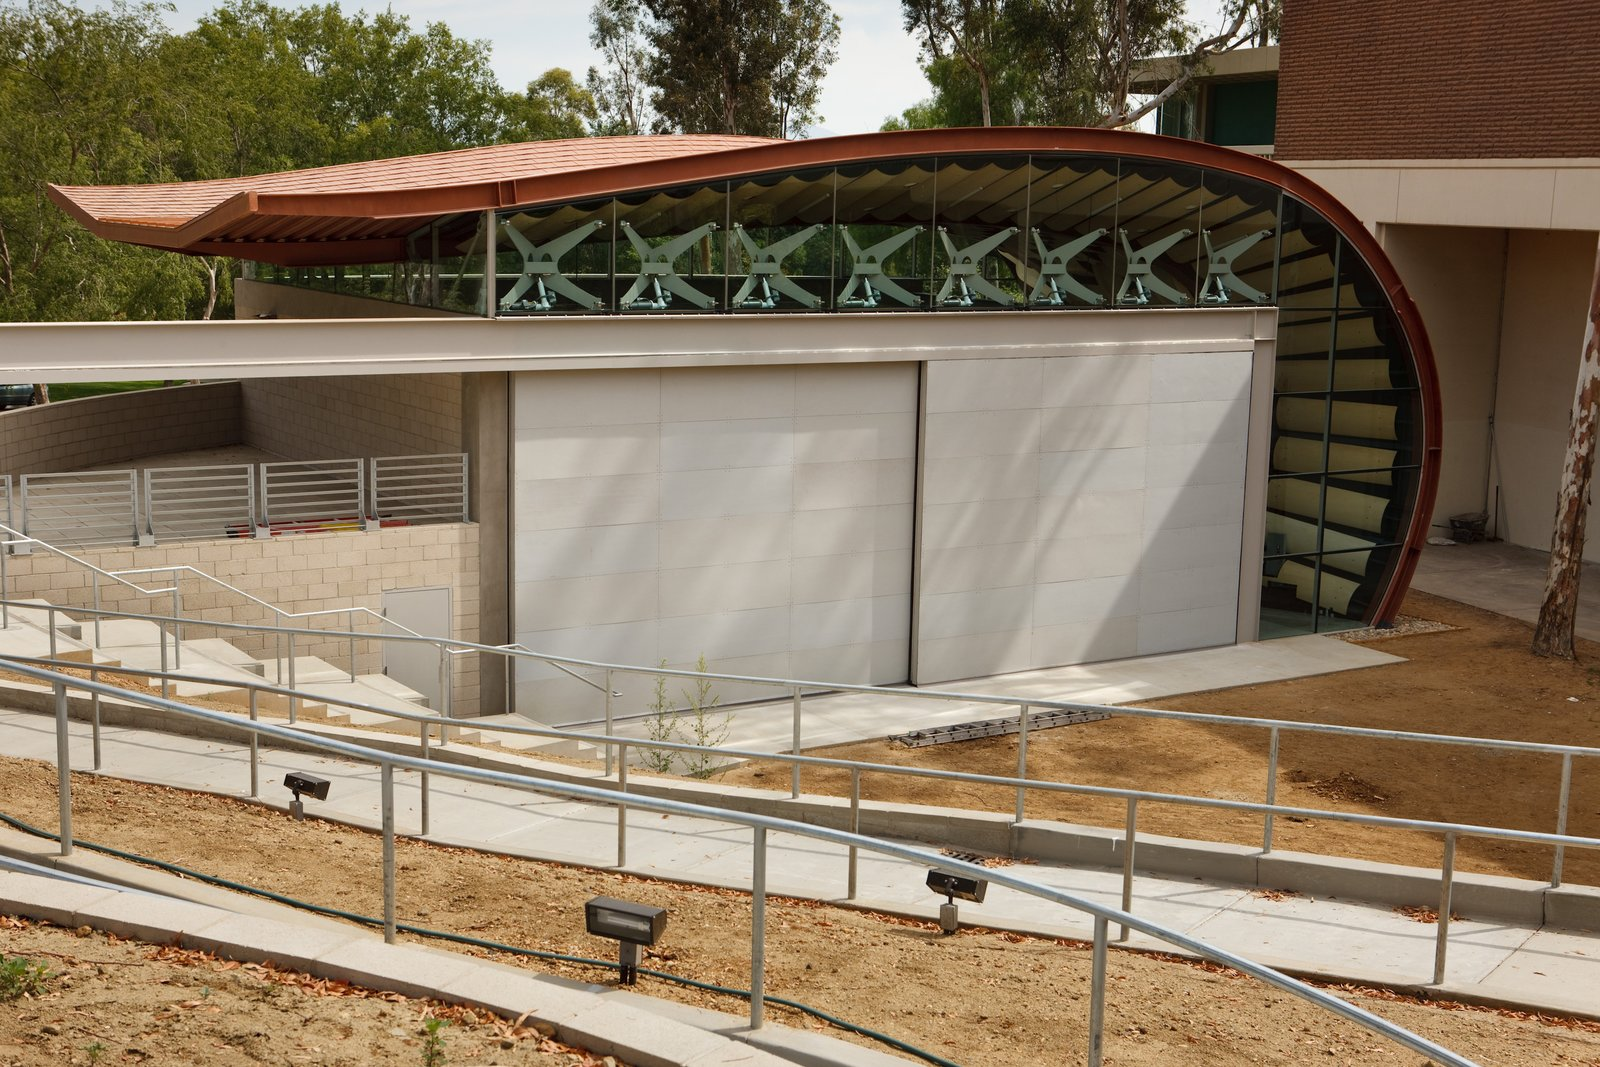 CalArts School of Music - construction of the Wild Beast ampitheater  Photo 4 of 6 in The Wild Beast by Hodgetts + Fung